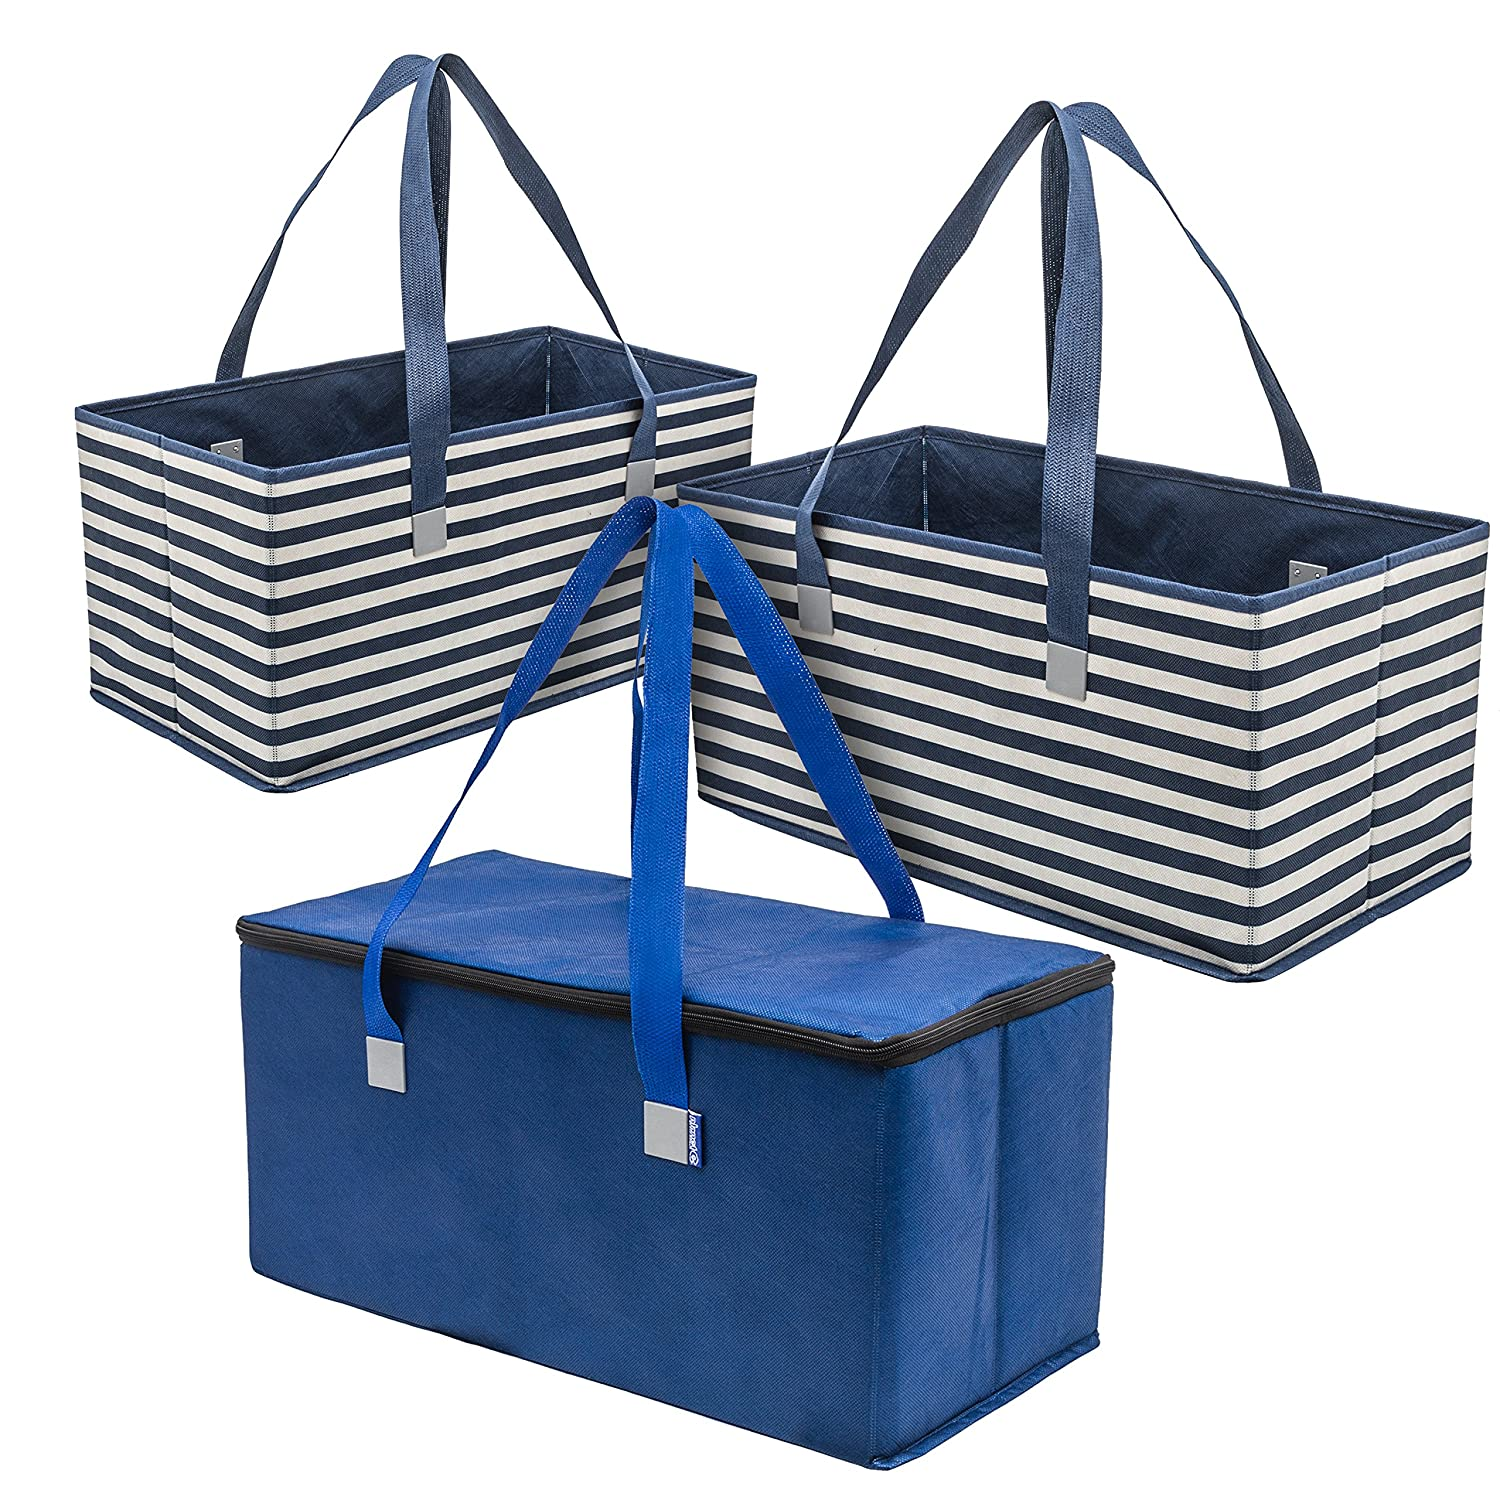 Planet E Reusable Grocery Shopping Bags – Large折りたたみボックスwith Reinforced Bottomsリサイクルプラスチック製(パックof 3 ) ブルー H1292_S3_AST B074QT8YCH Navy Stripe & Solid Navy Stripe & Solid